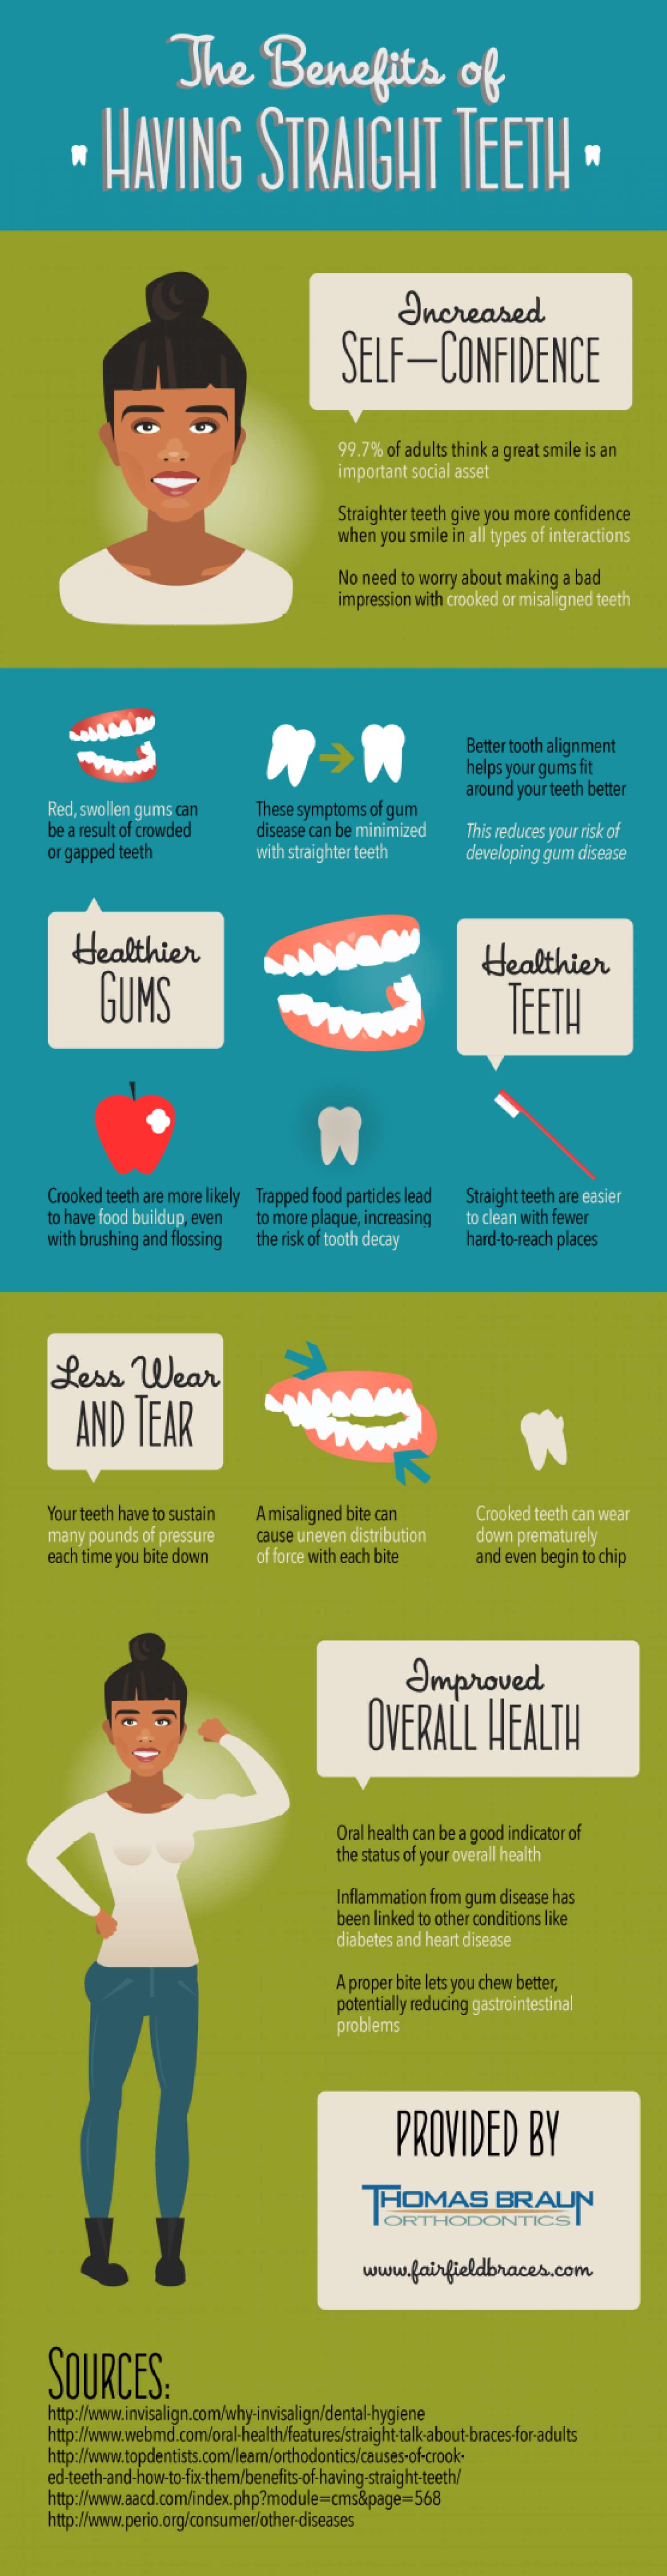 The Benefits of Having Straight Teeth  Infographic